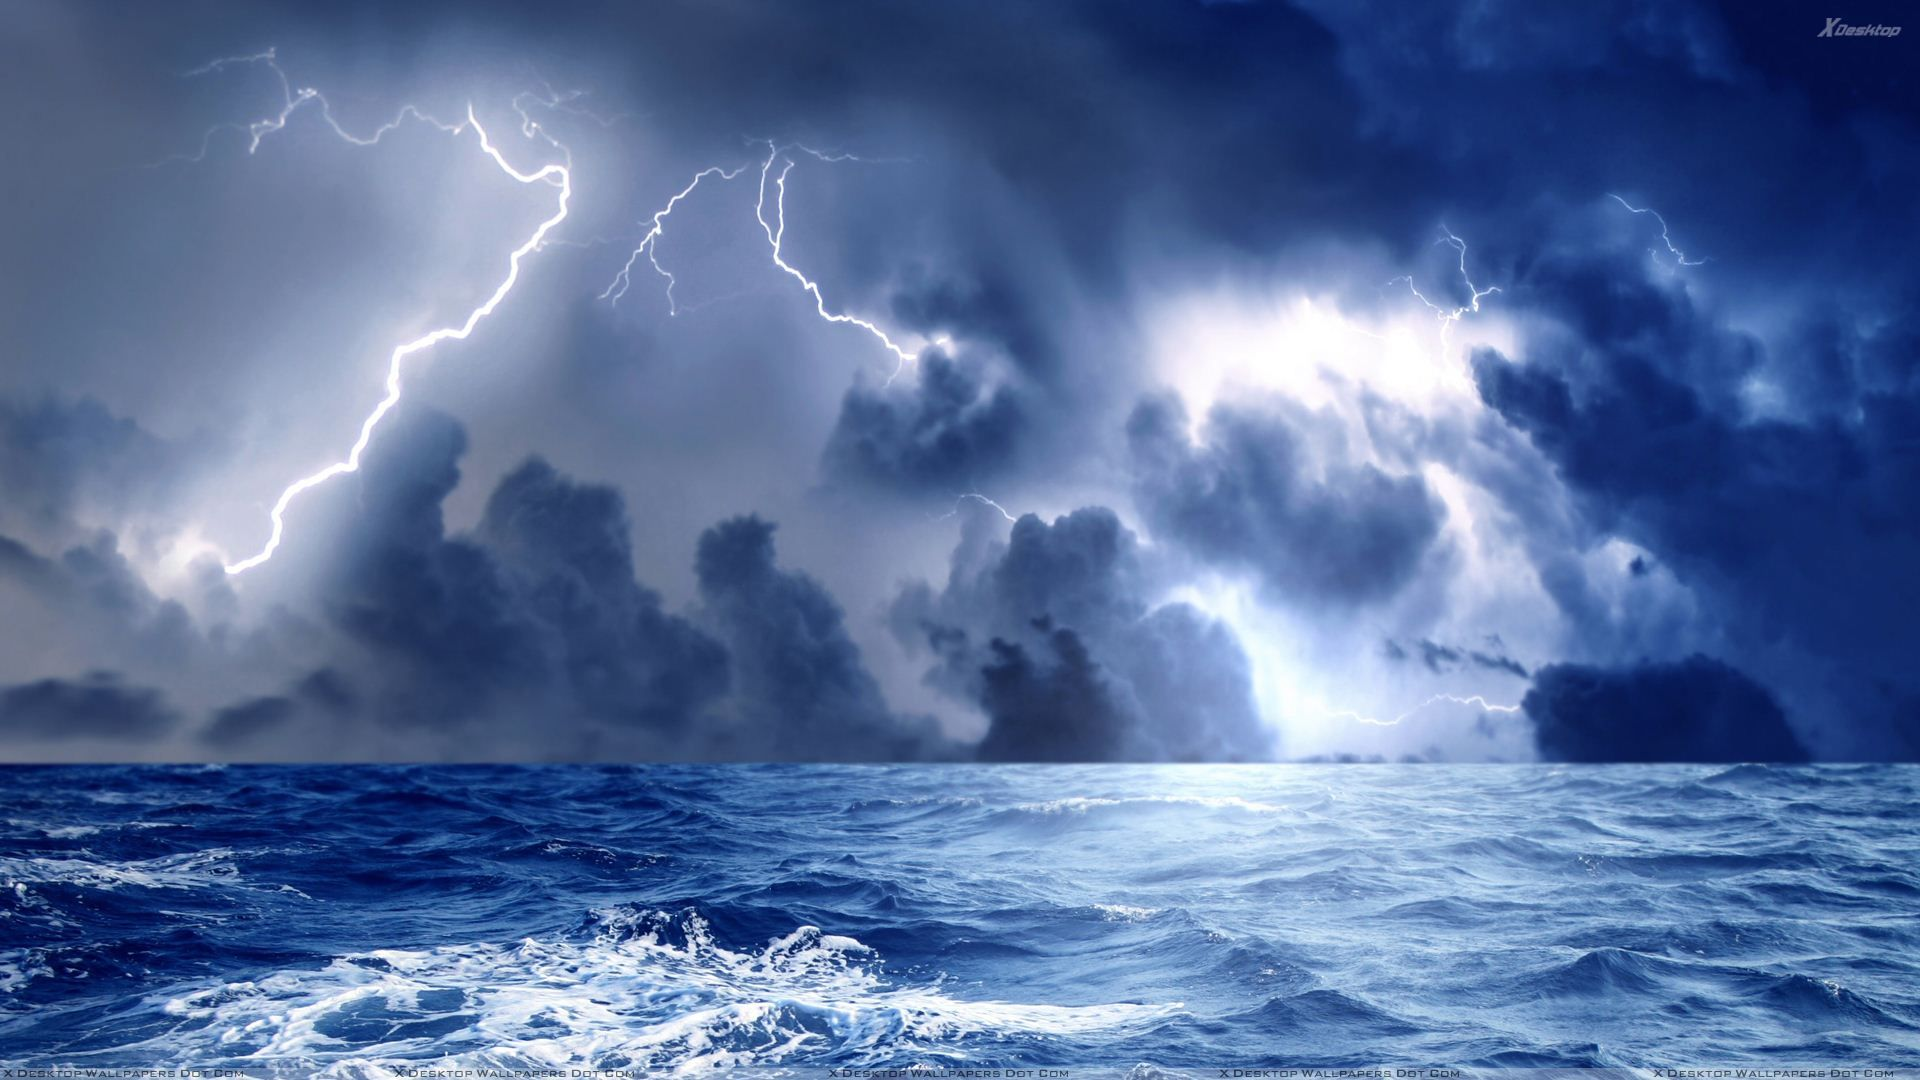 1920x1080 Storm And Blue Lightining At Sea Wallpaper